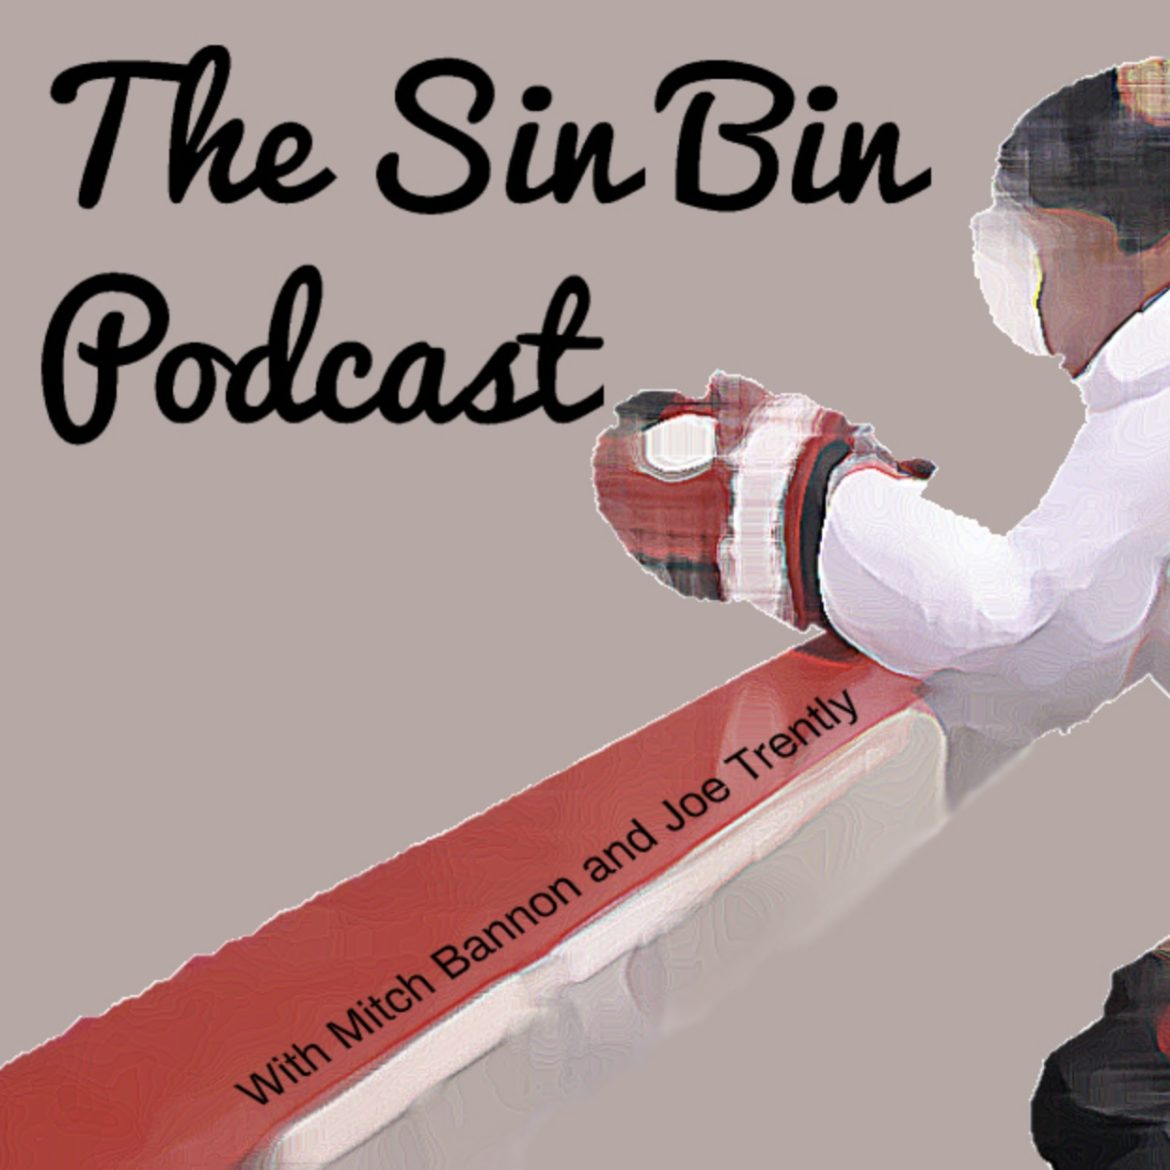 The Sin Bin Podcast – Weekly sports takes and insights so good, it should be a sin